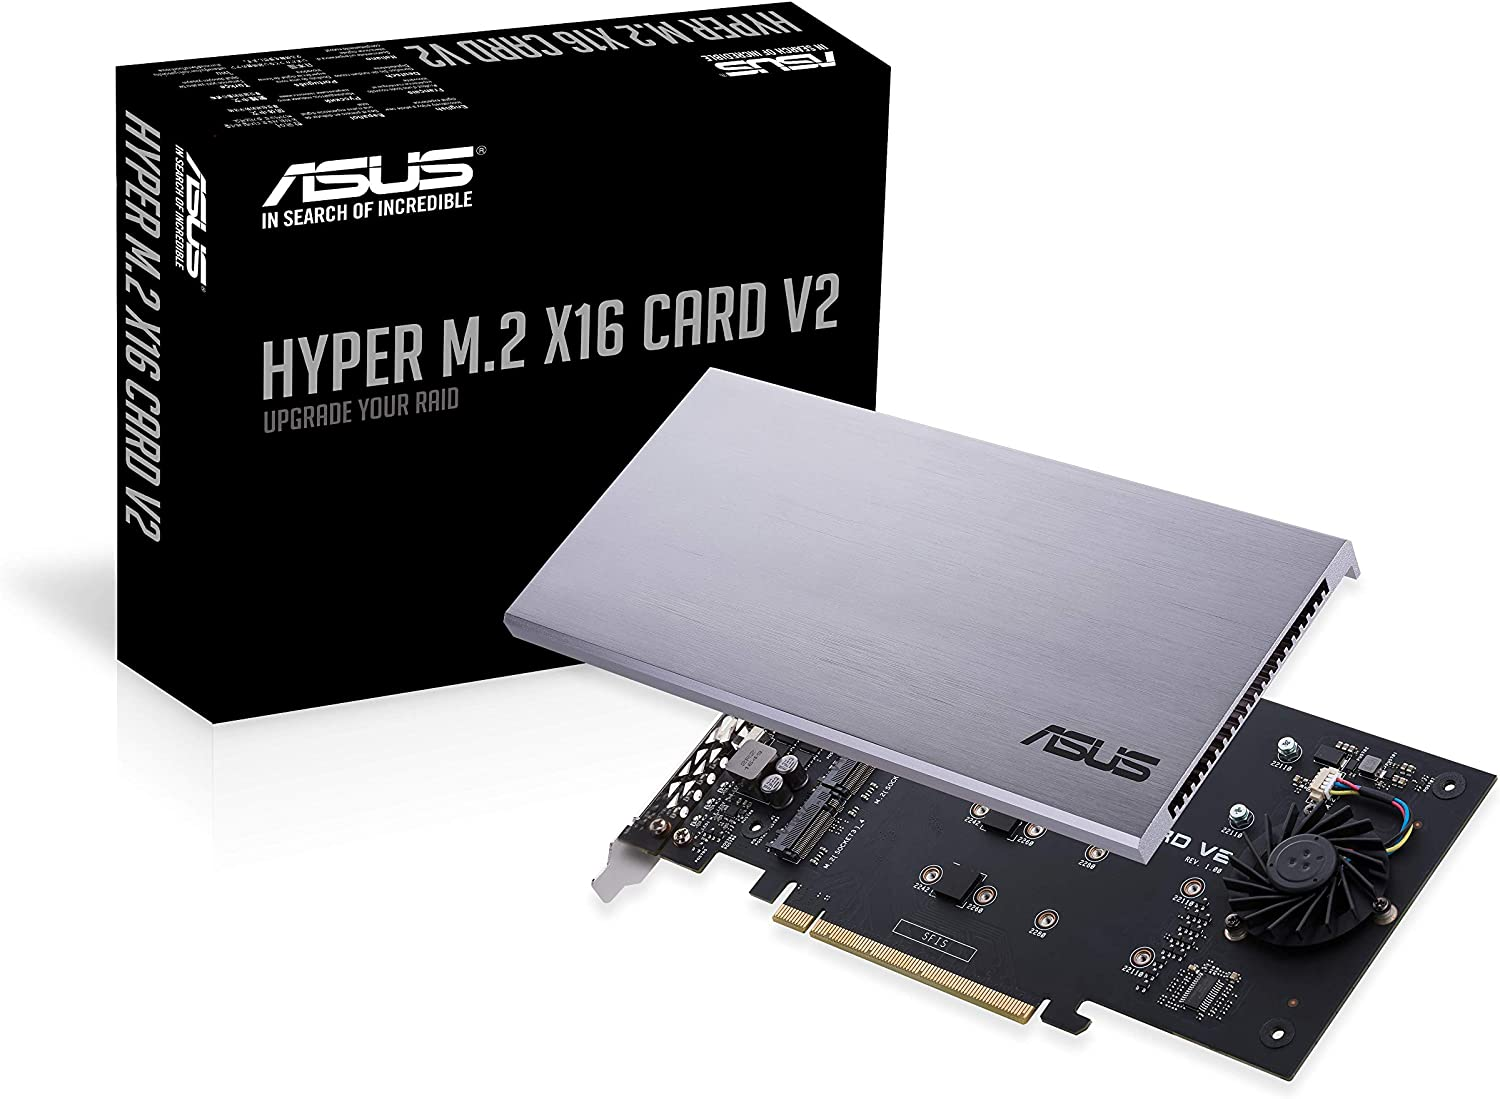 for Prime B450-Plus 3.0 x4 Arch Memory Pro Series Upgrade for Asus 512 GB M.2 2280 PCIe QLC NVMe Solid State Drive